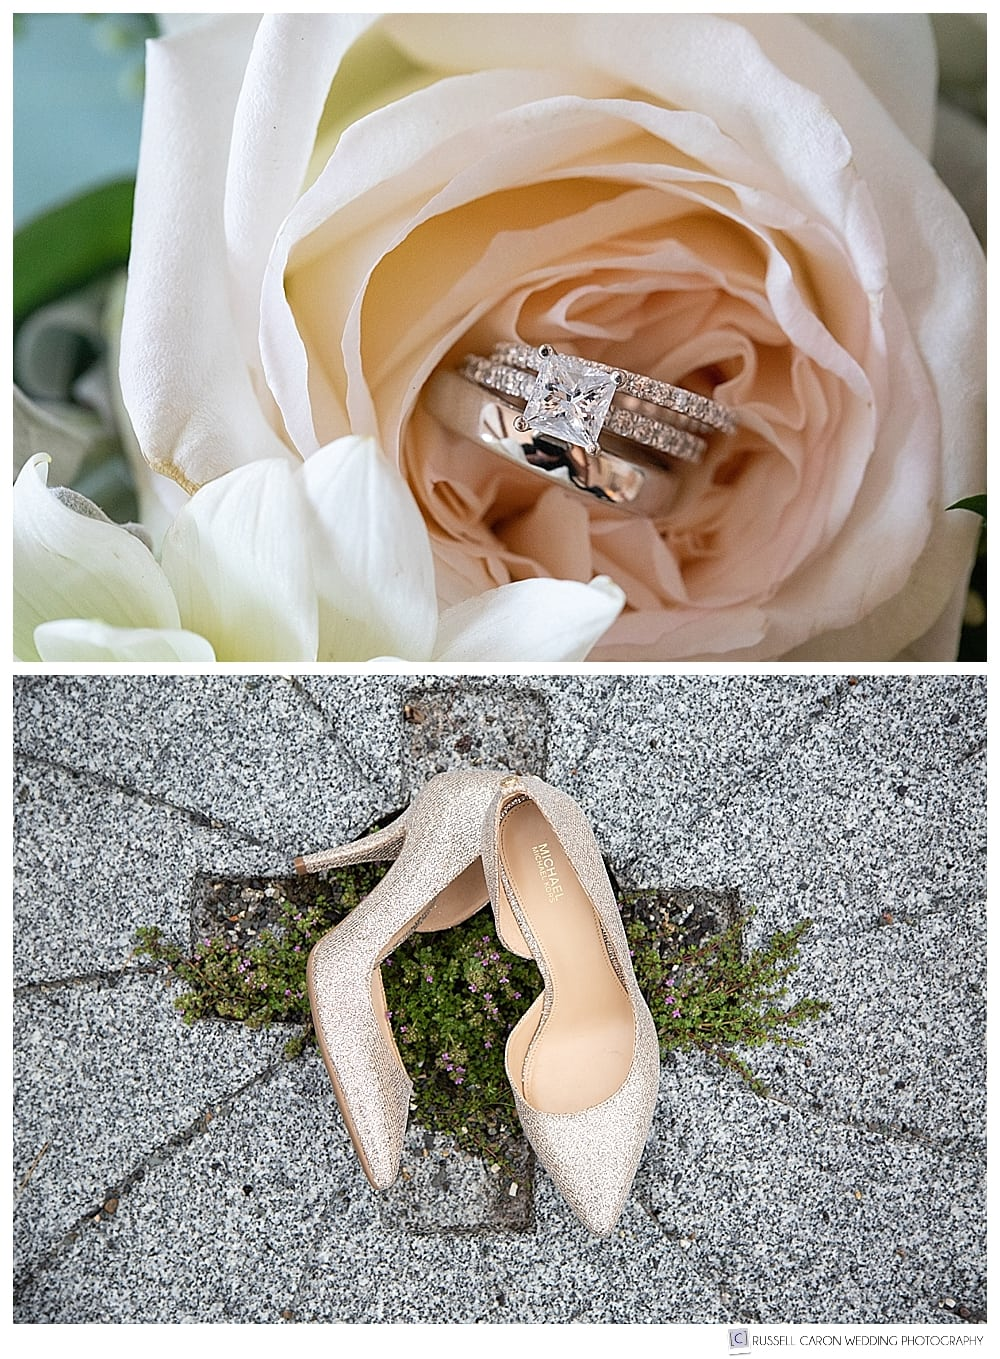 Bridal details, ring shots, shoe shots